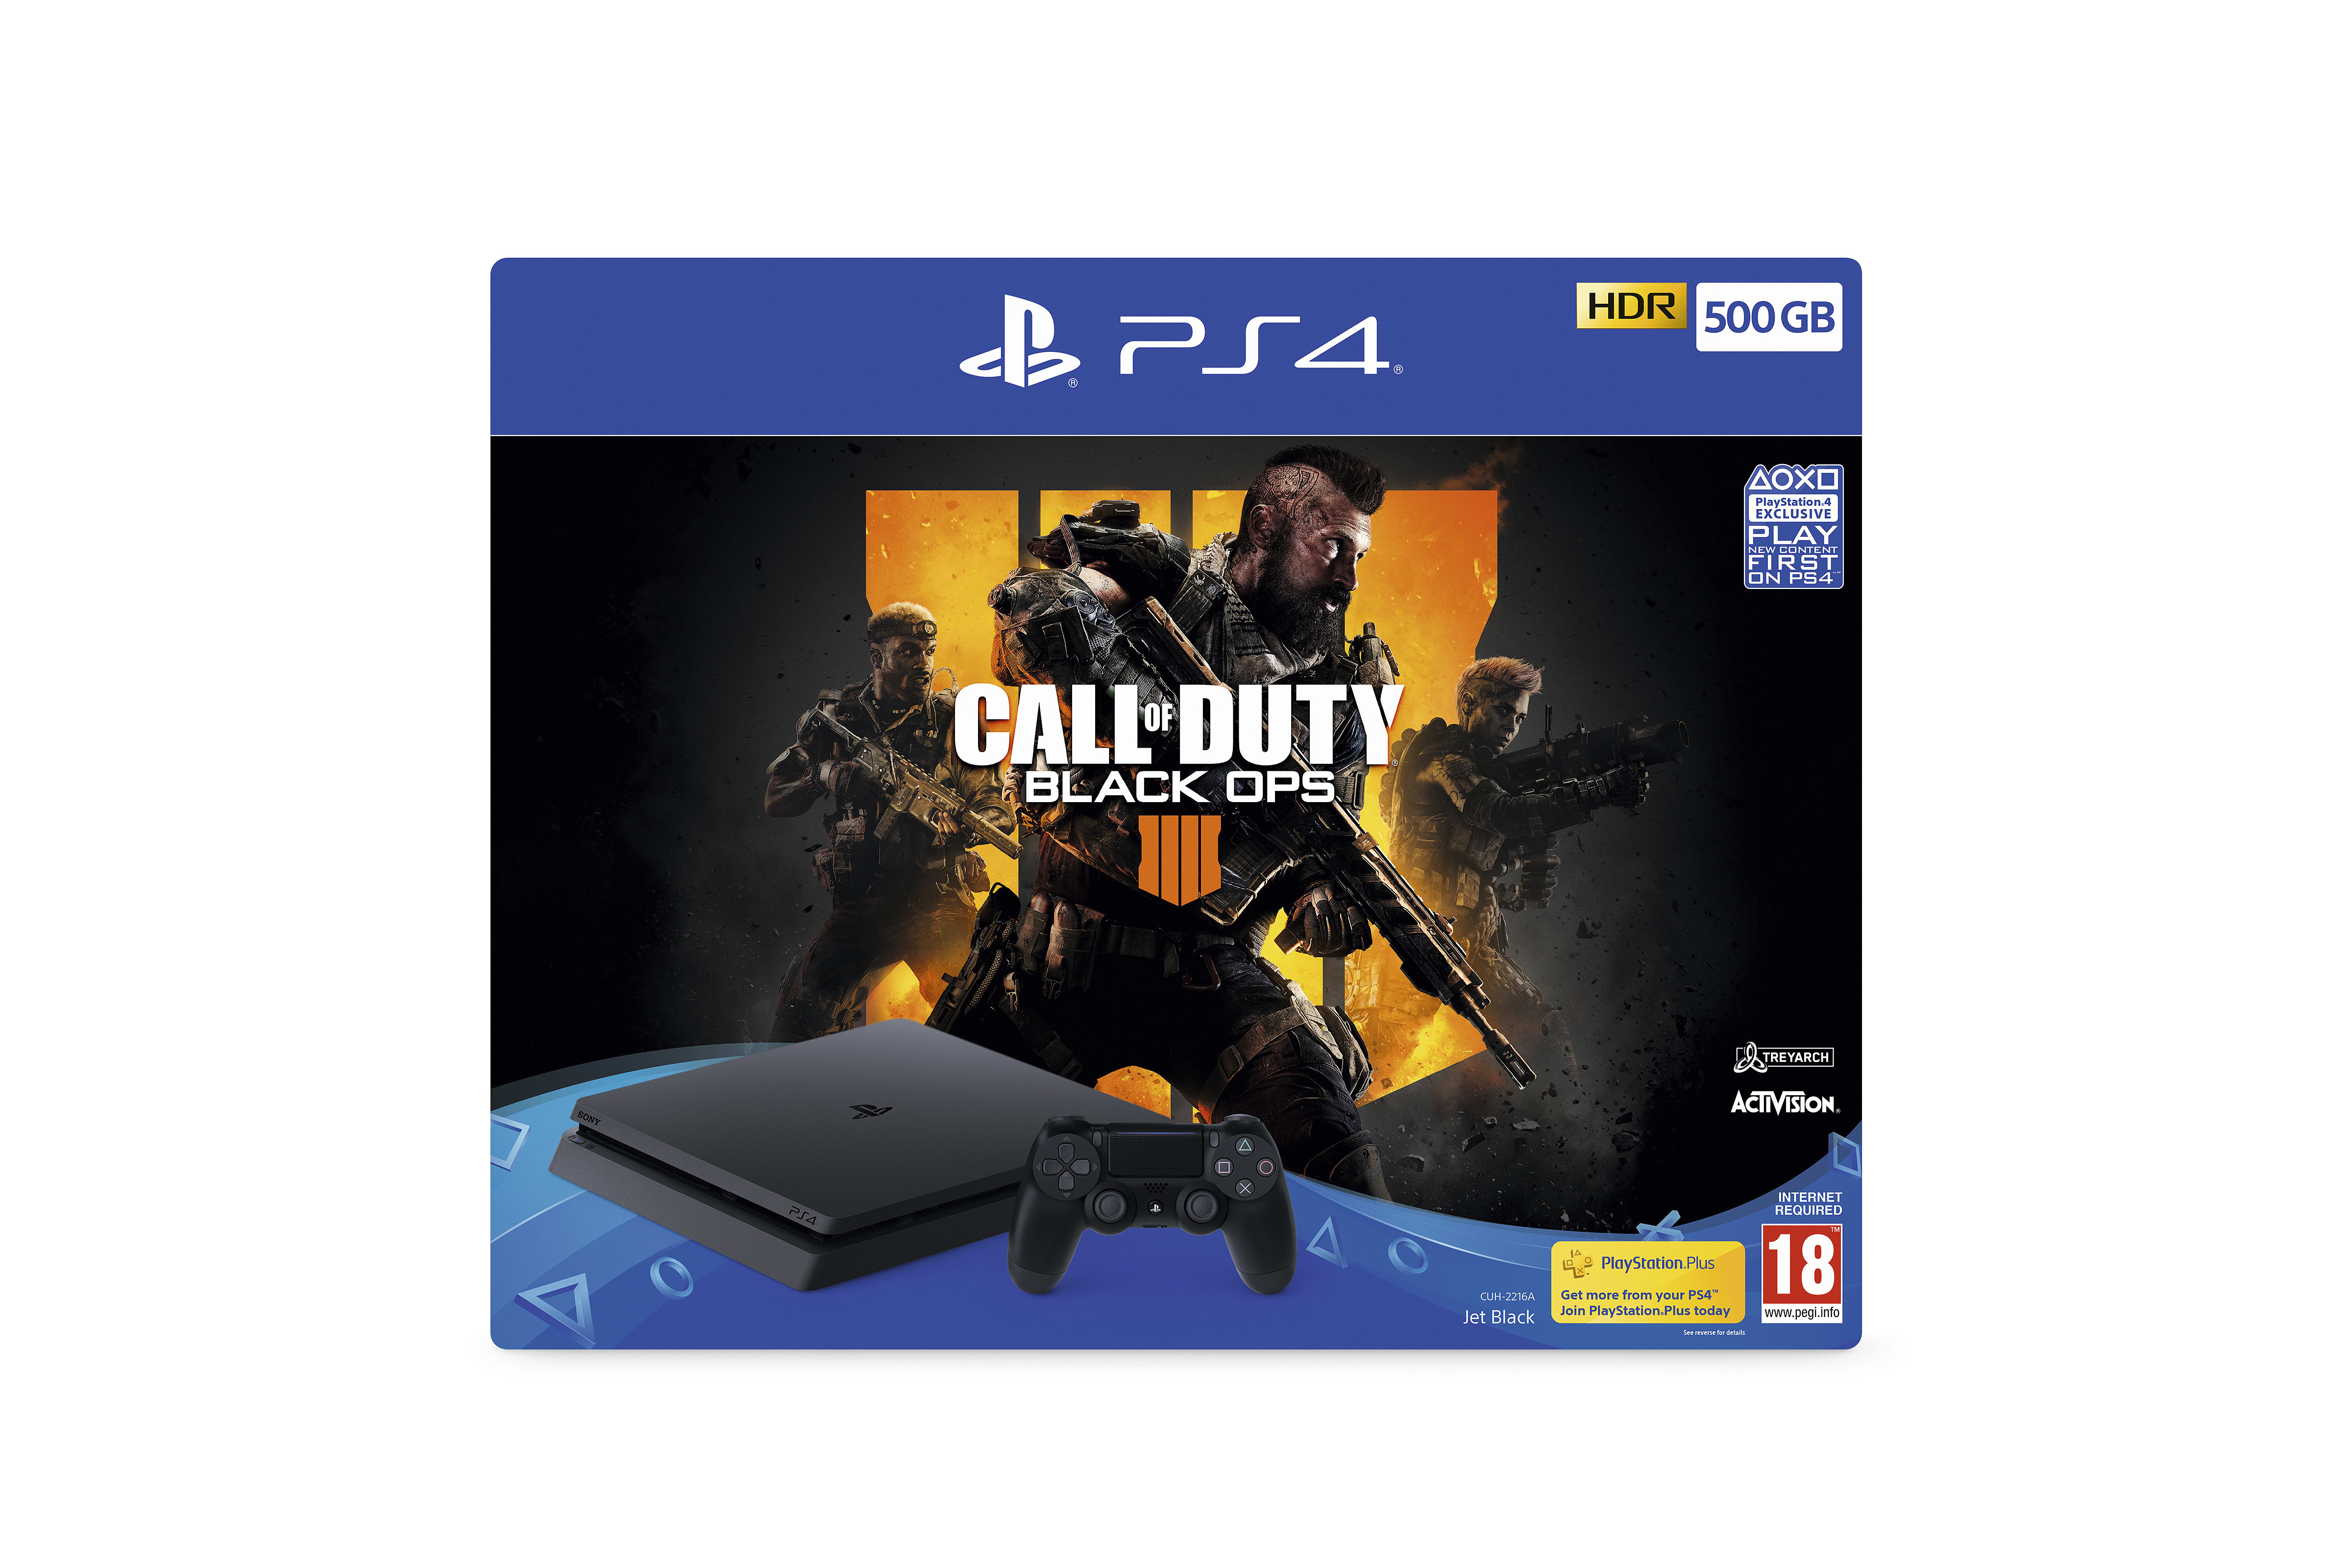 Buy Call Of Duty Black Ops 4 Ps4 500gb Bundle Free Uk Delivery Game Gold Edition